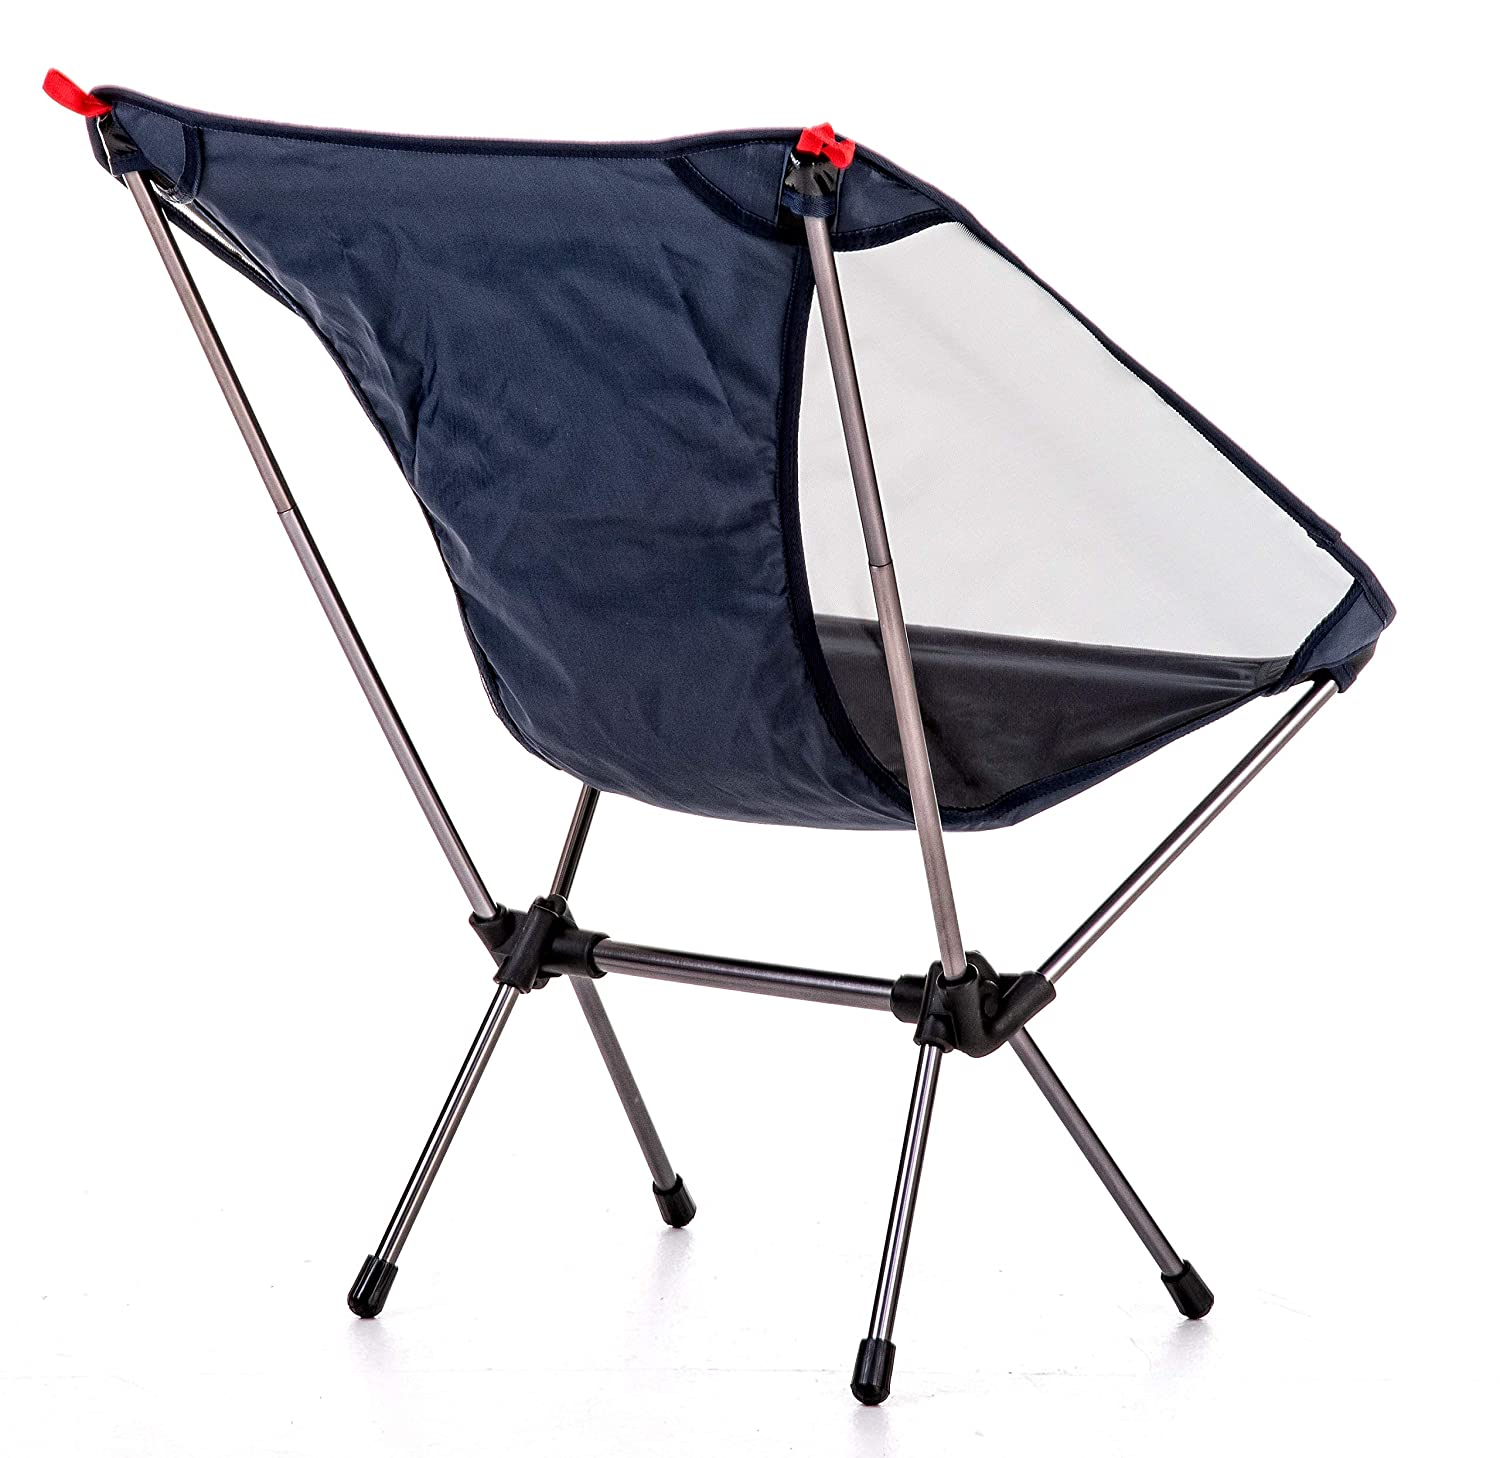 69457885ddd6 Foldable in Compact Bag Perfect for Outdoor Camping ForestCamp an ...